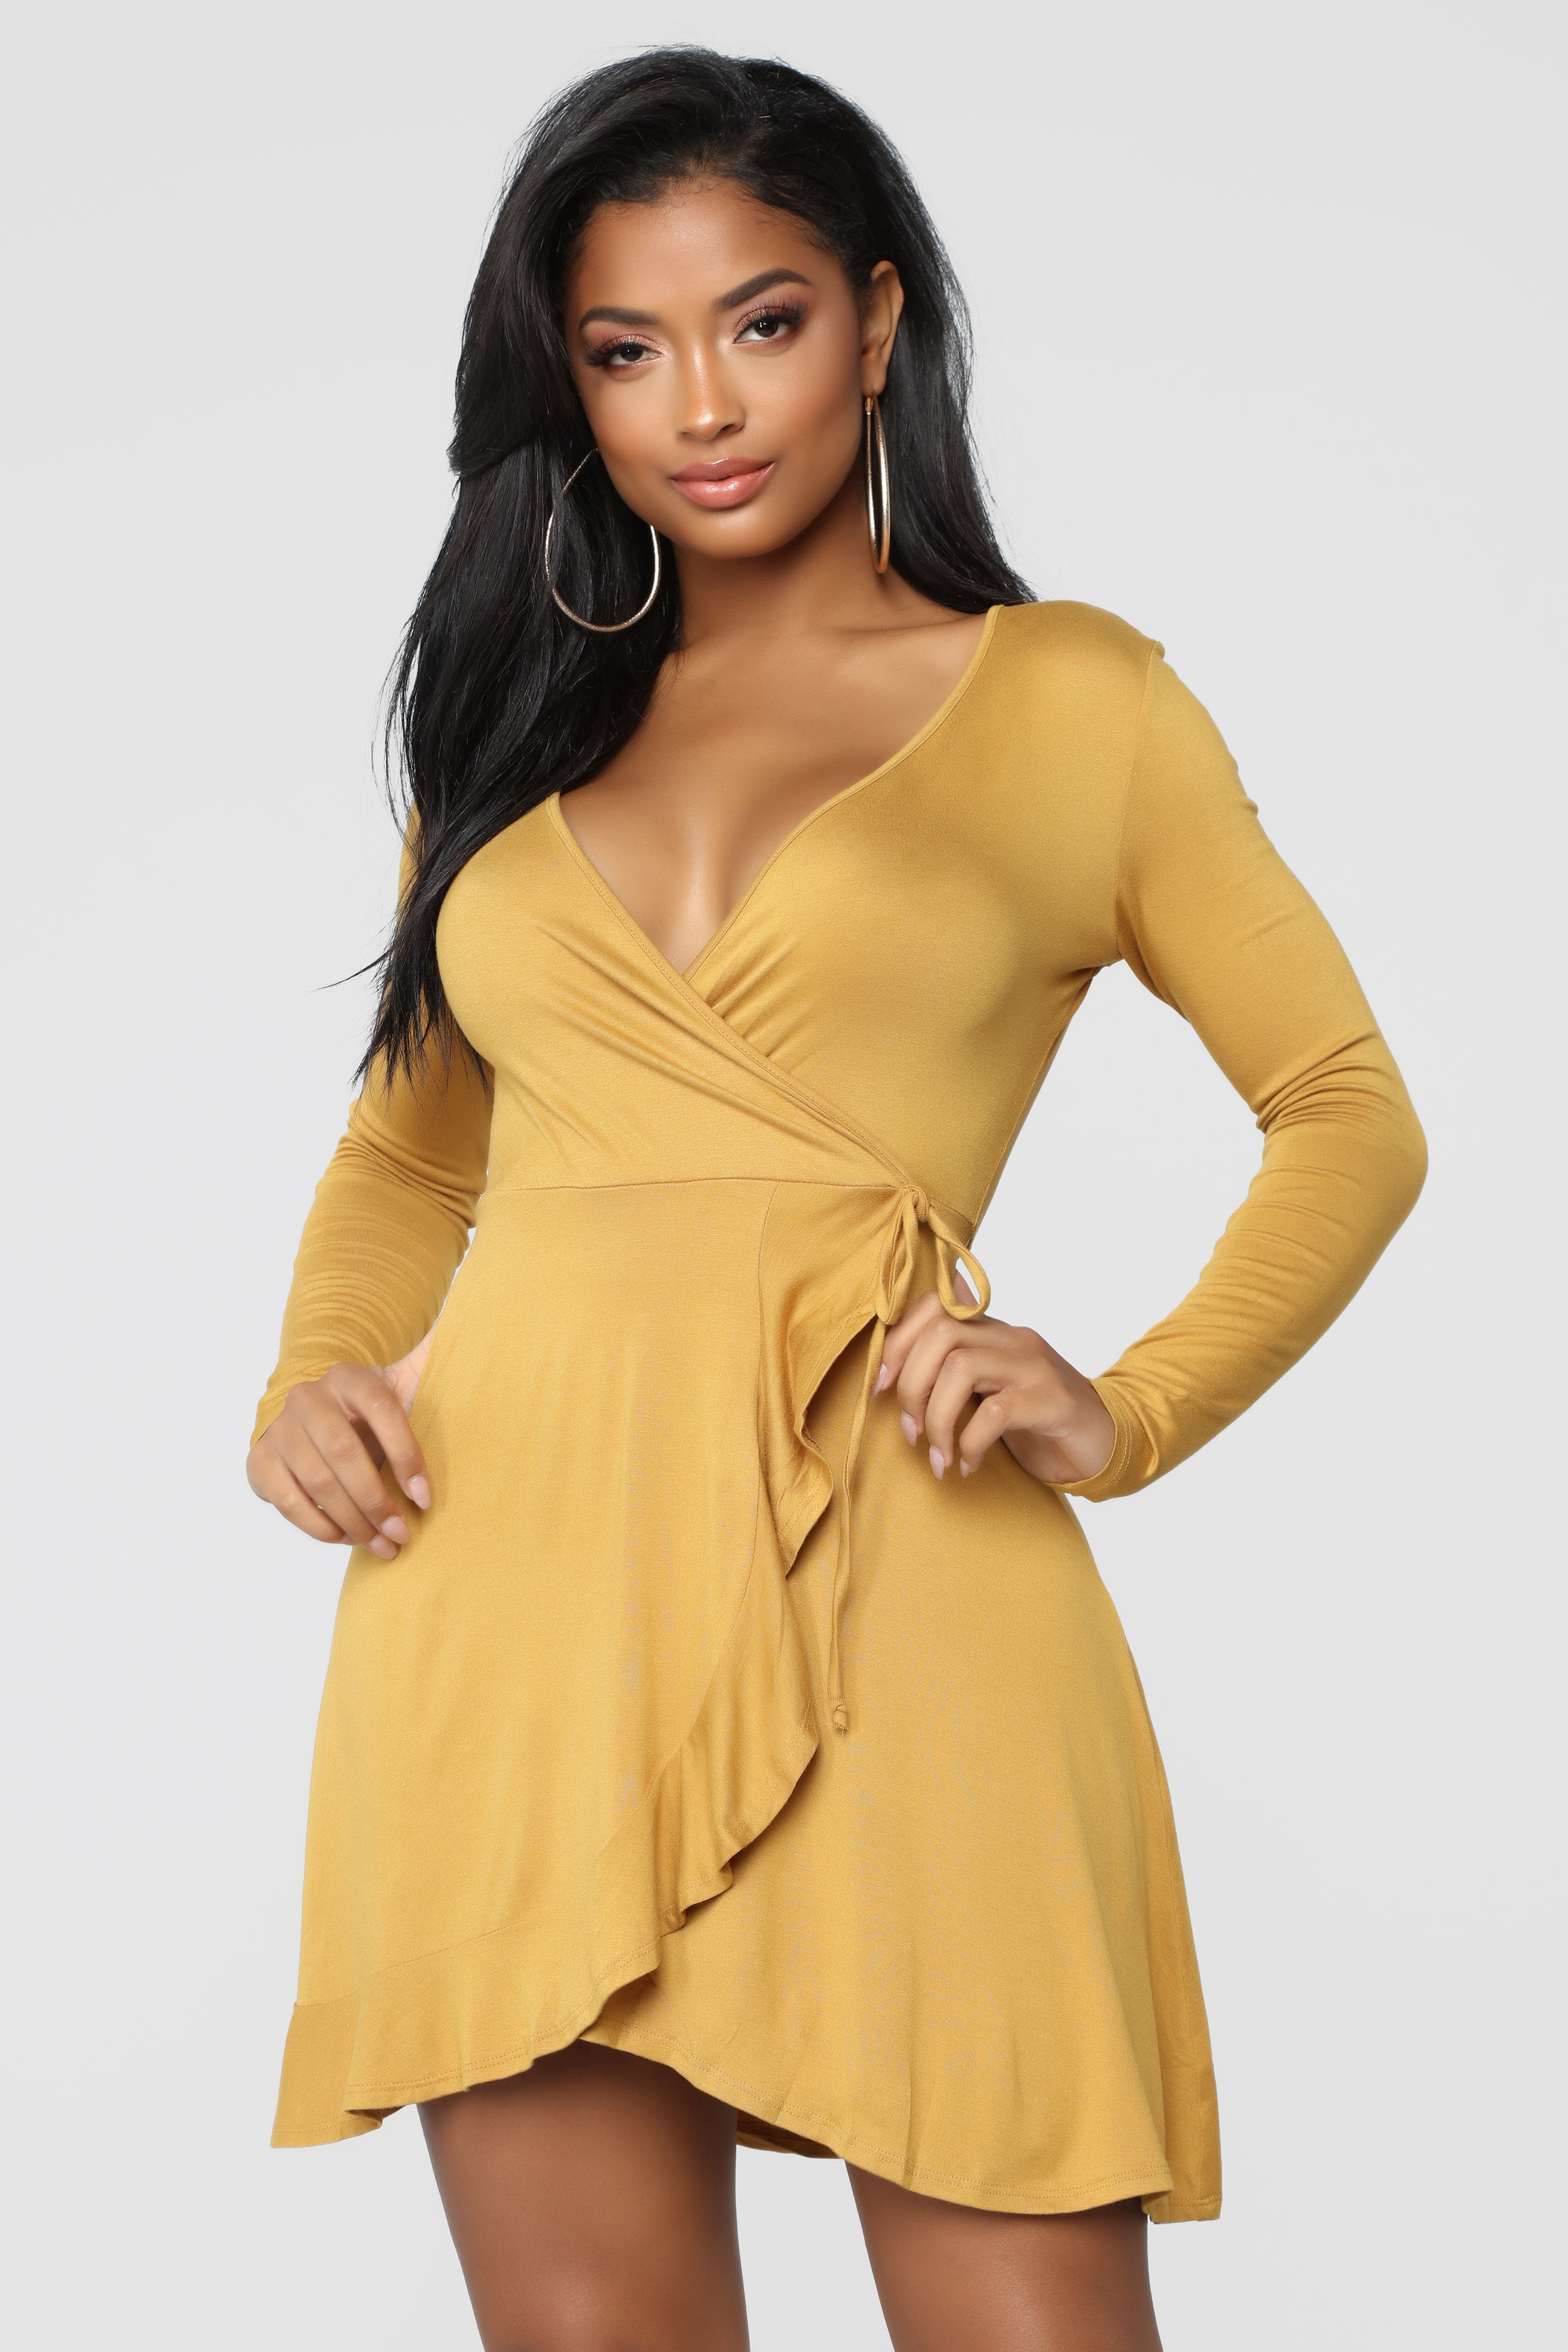 d94c63b56b502 https://www.fashionnova.com/products/varsity-blues-dress-mustard ...